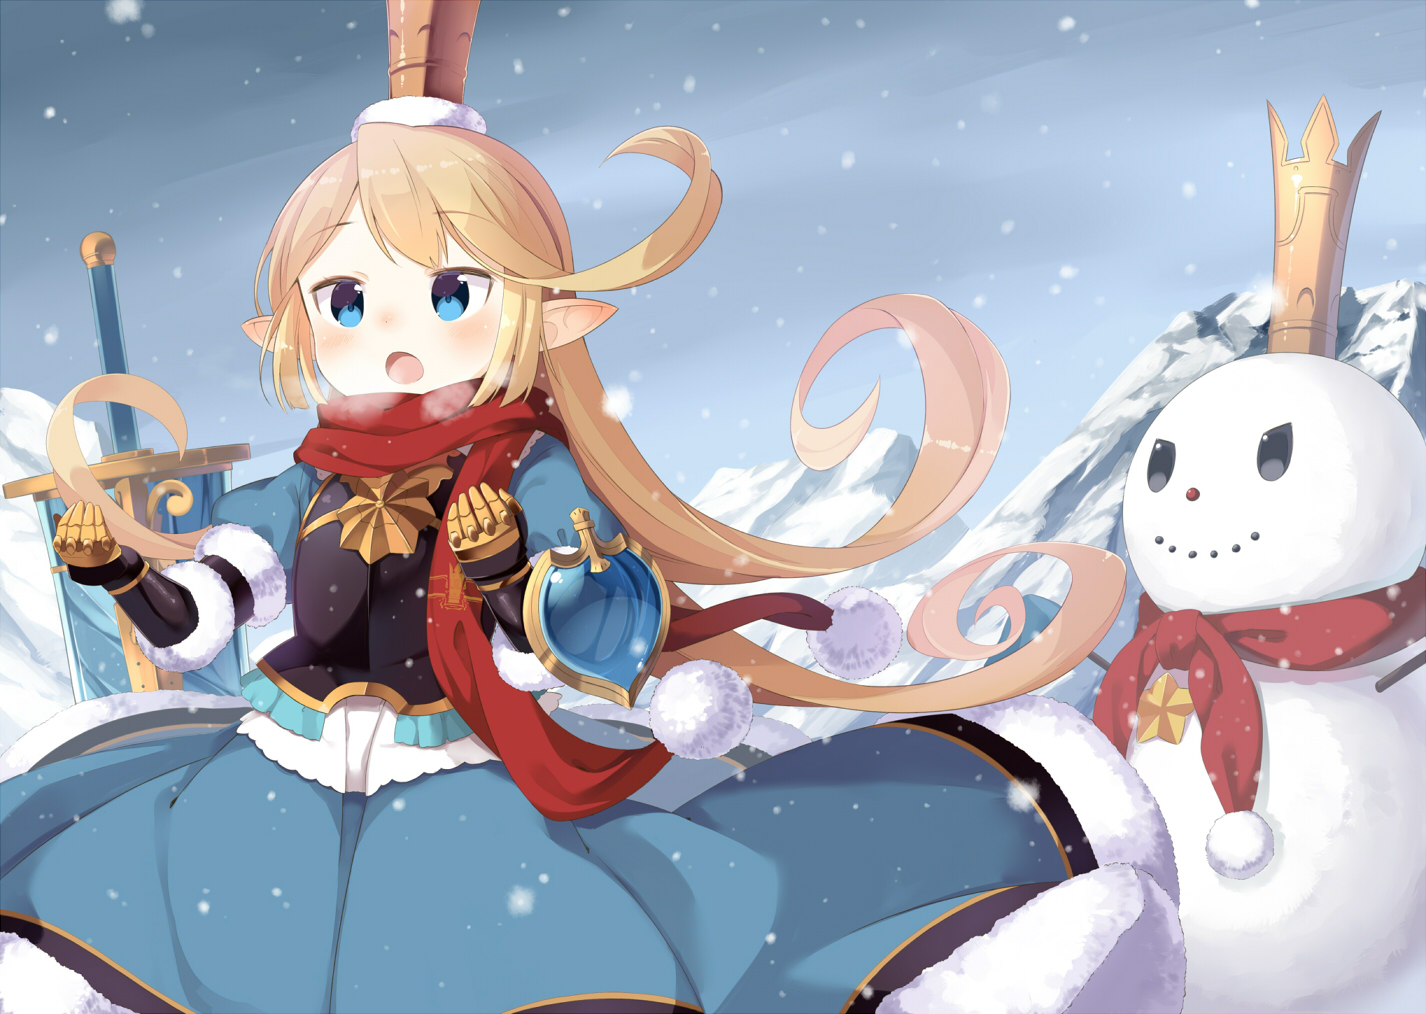 aqua_eyes armor blonde_hair blush charlotta_(granblue_fantasy) dress granblue_fantasy hat loli long_hair muku-coffee pointed_ears scarf snow snowman sword weapon winter